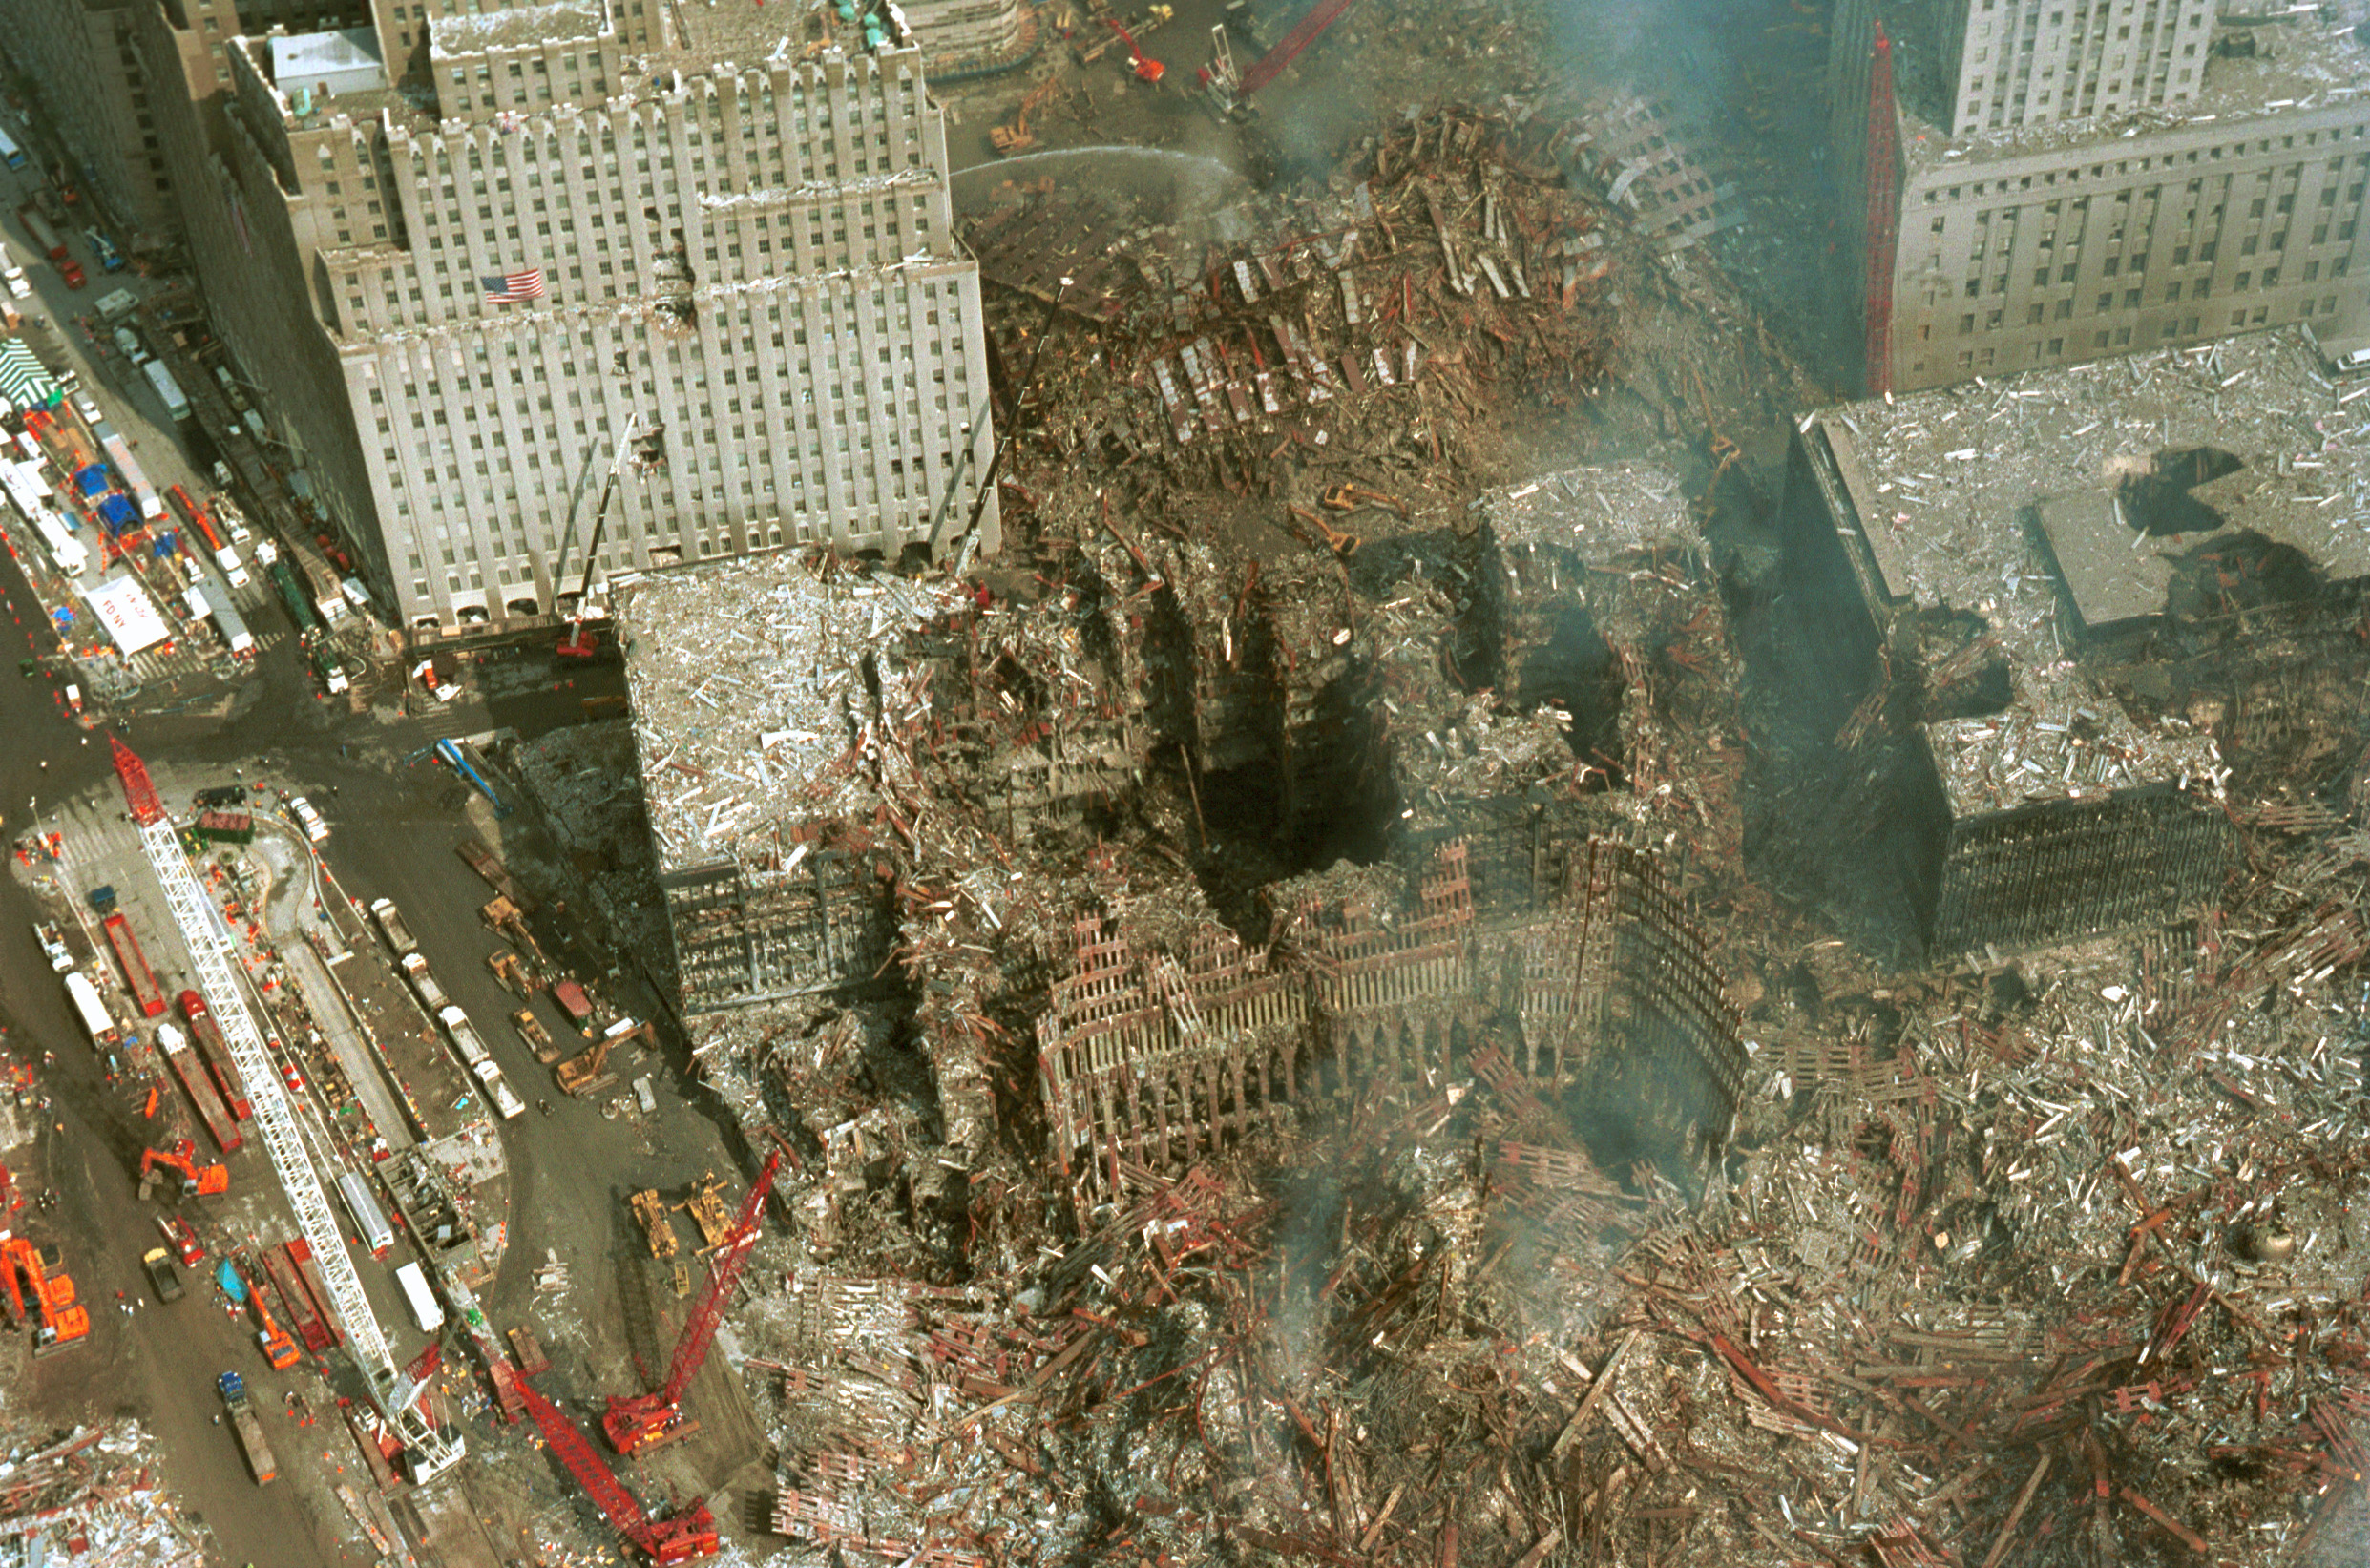 and just war engaging peace aftermath of 9 11 attacks view of world trade center ruins